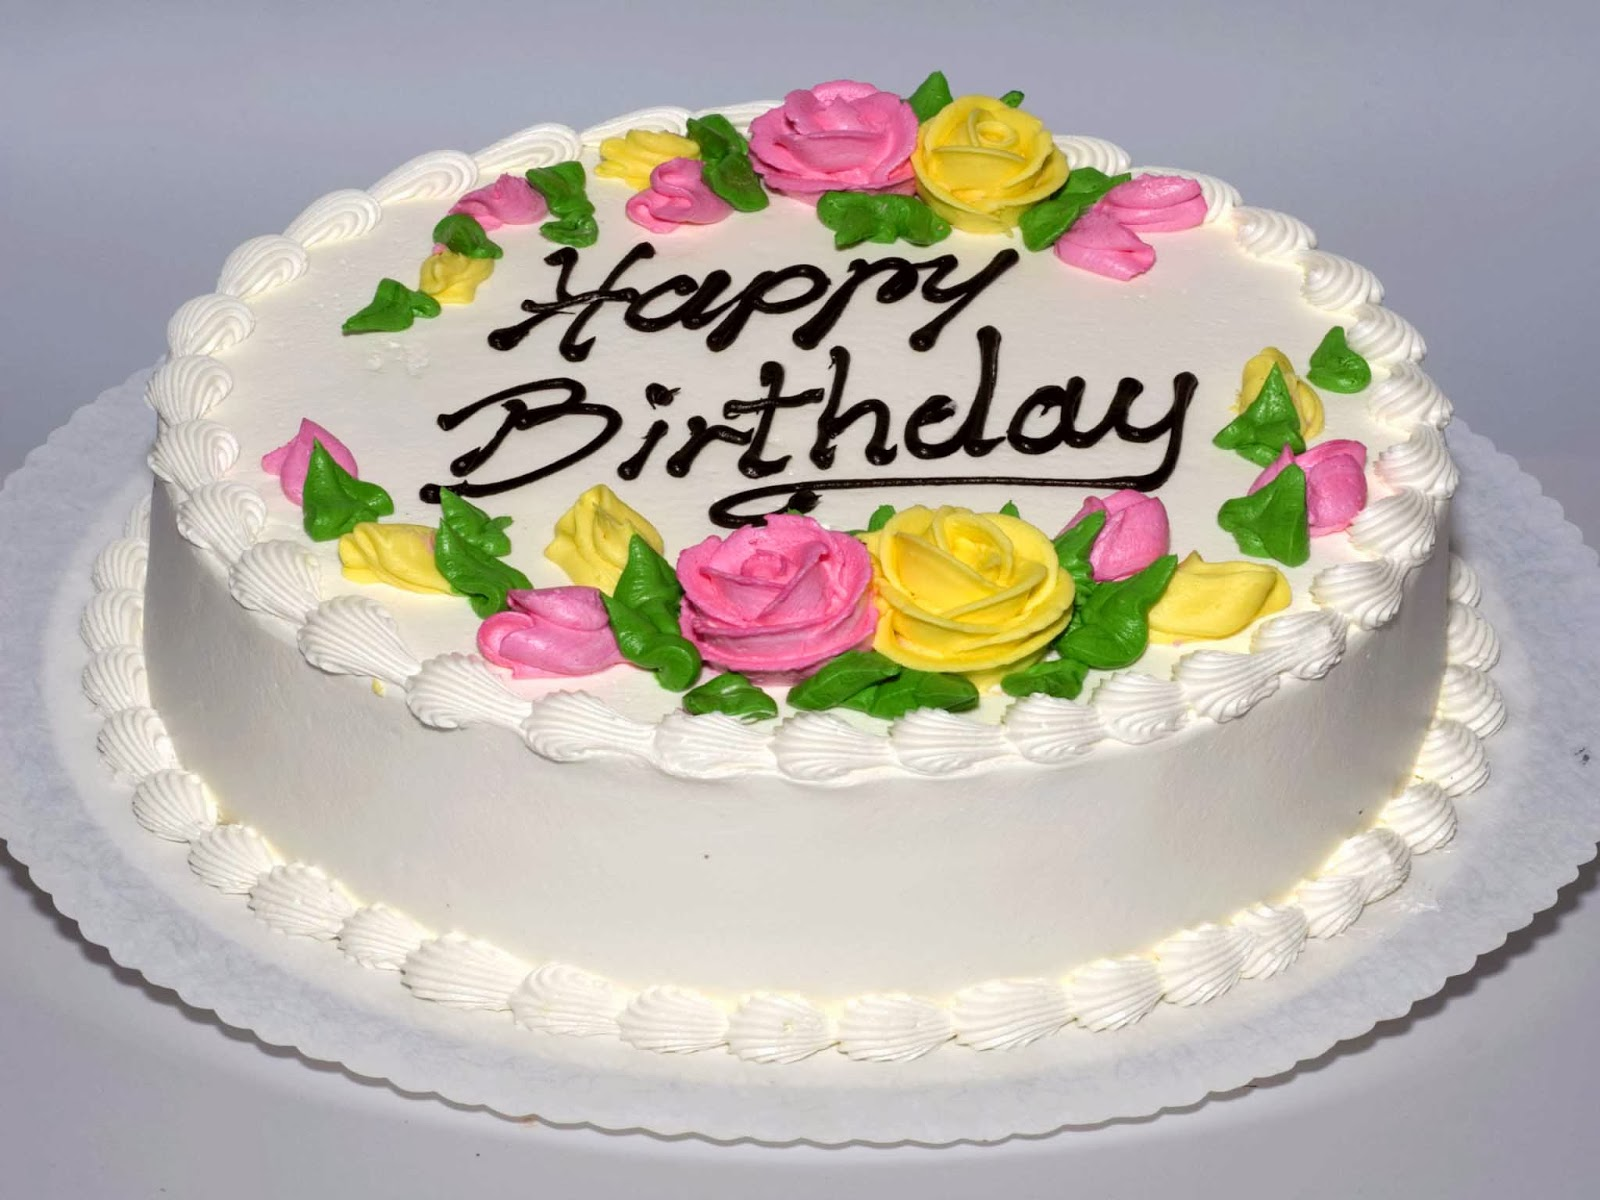 birthday cakes images free download